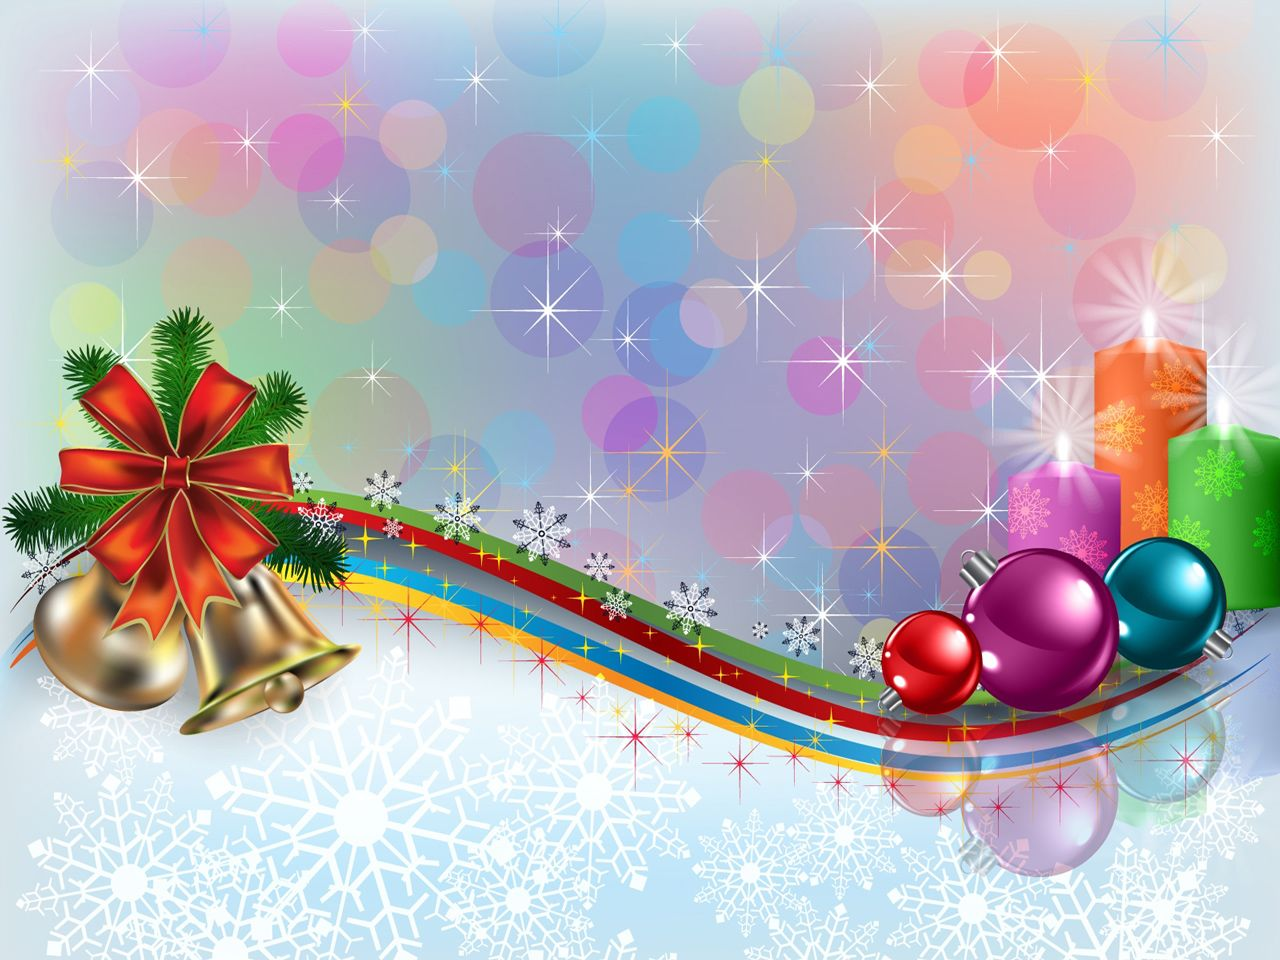 Beautiful Christmas Ornaments beautiful christmas pictures for desktop | free beautiful shiny